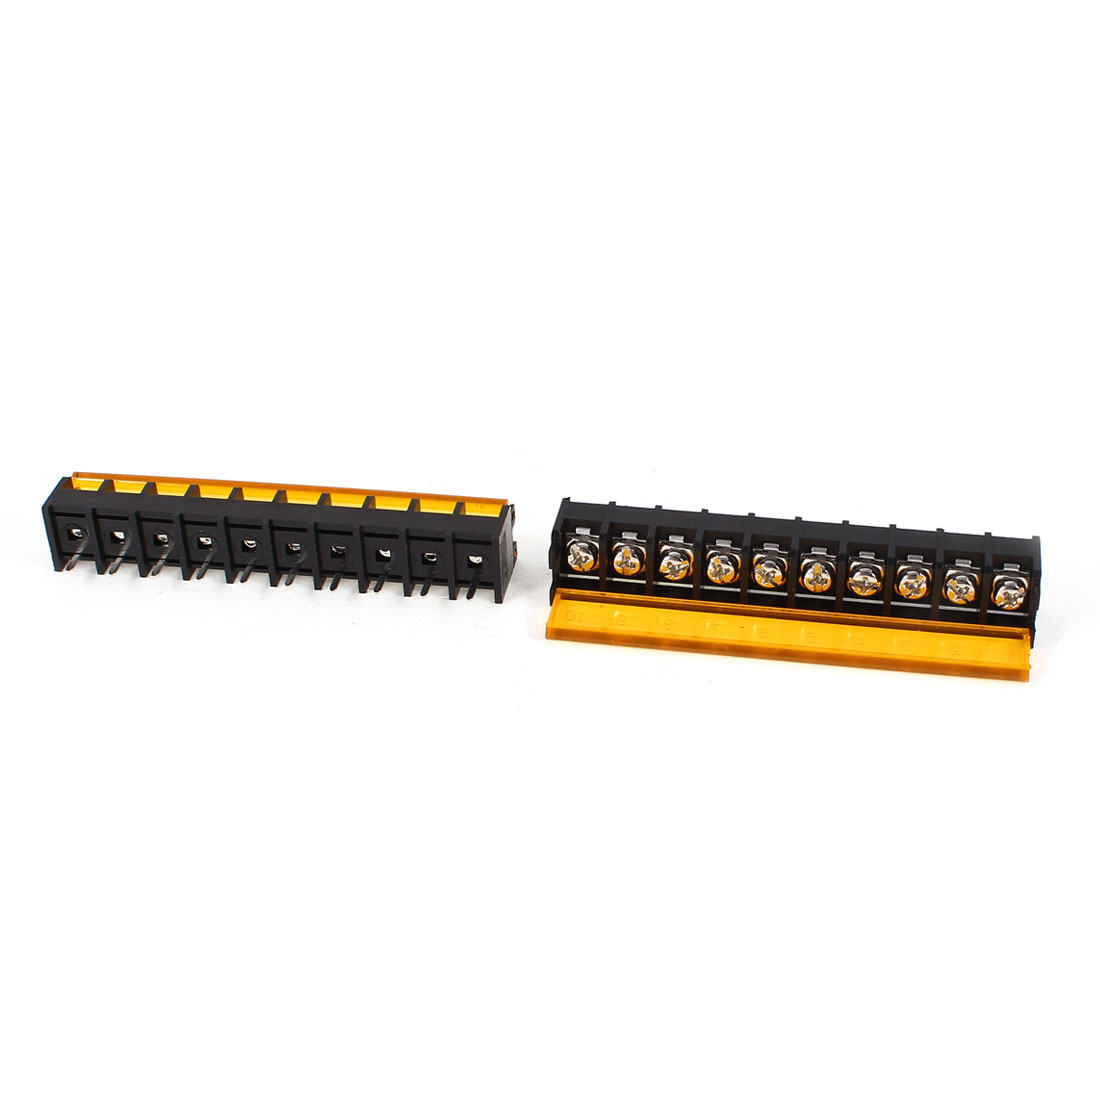 2Pcs 1 Rows 10 Position 9.5mm Pitch Screw Terminal Barrier Block Strip 300V 30A